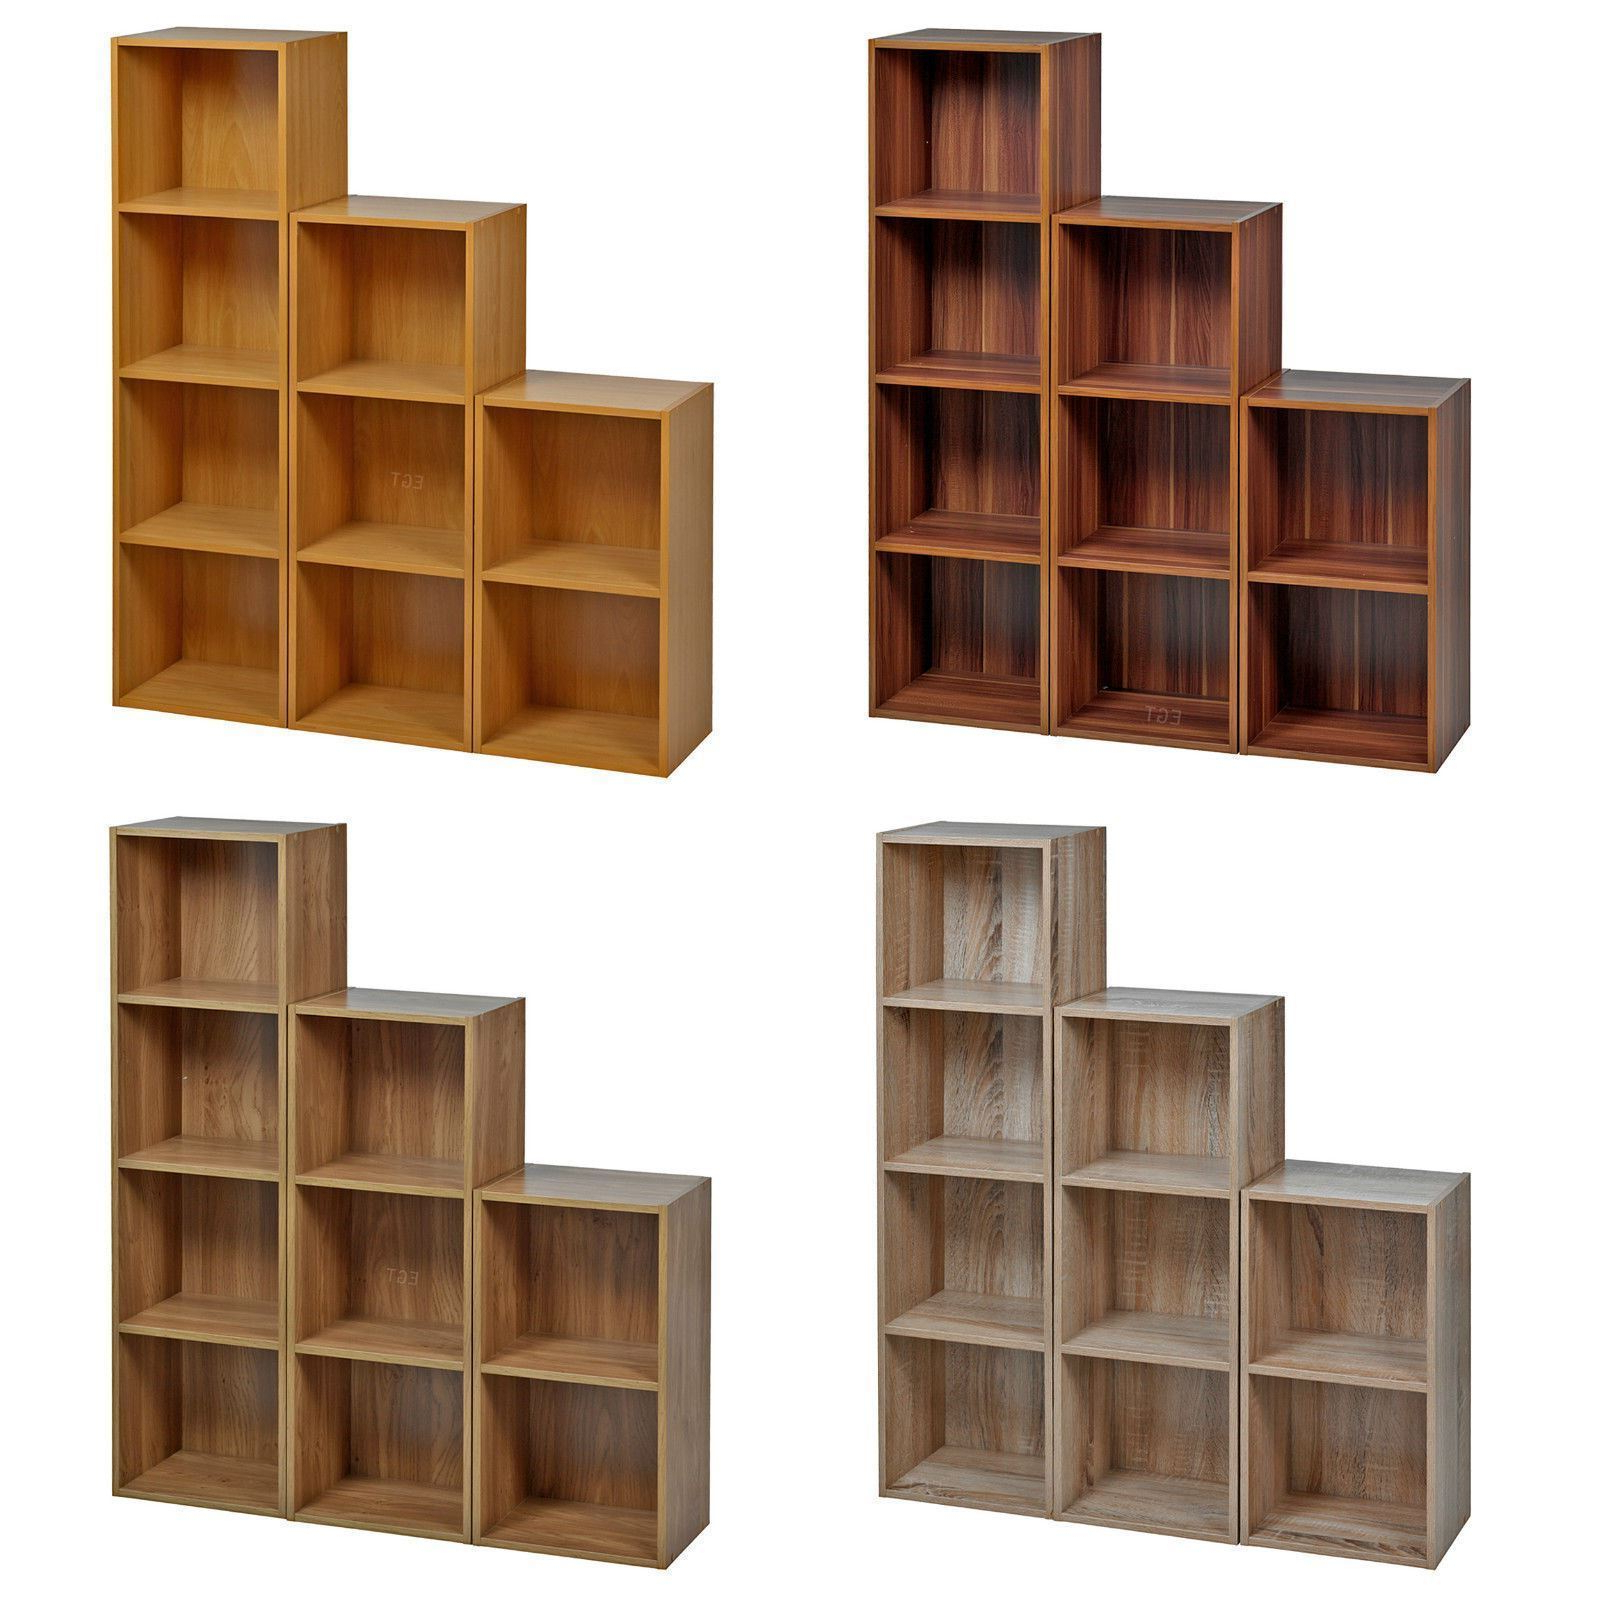 Fashionable Details About 2 4 Tier Wooden Bookcase Shelving Bookshelf Storage Furniture Cube Display Unit Regarding Lancashire Cube Bookcases (View 9 of 20)